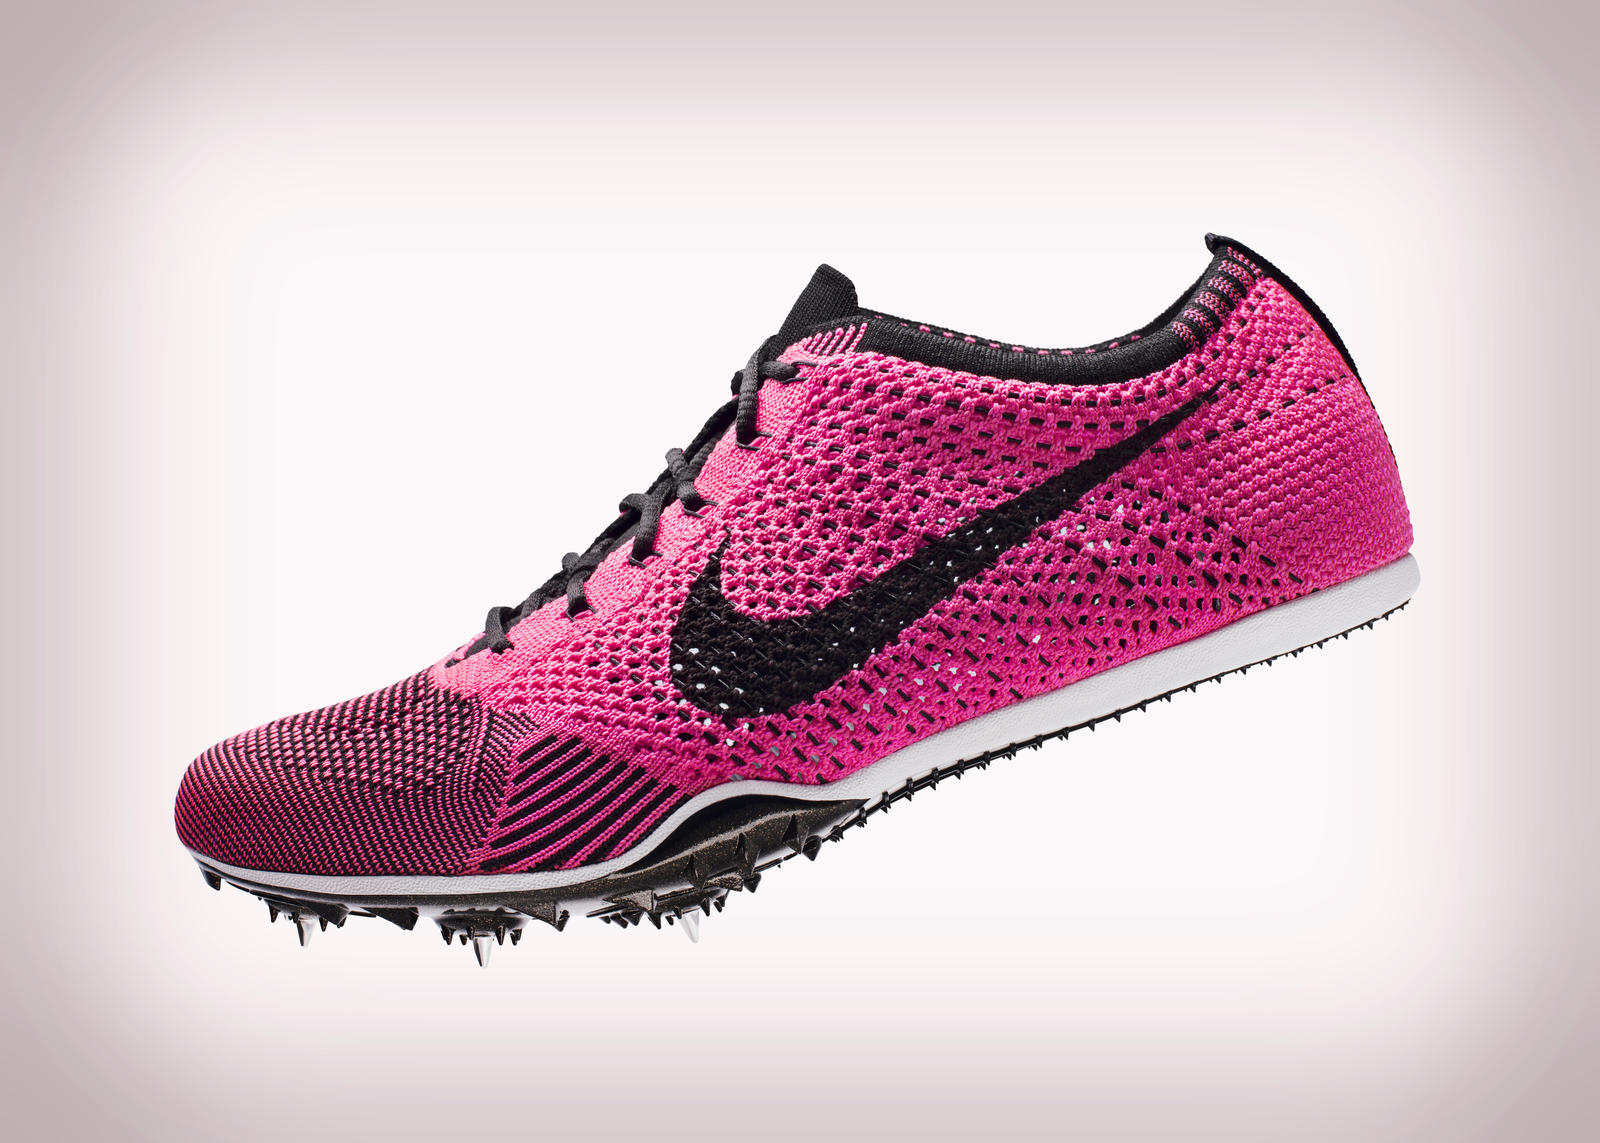 Nike Spike Shoes For Soccer